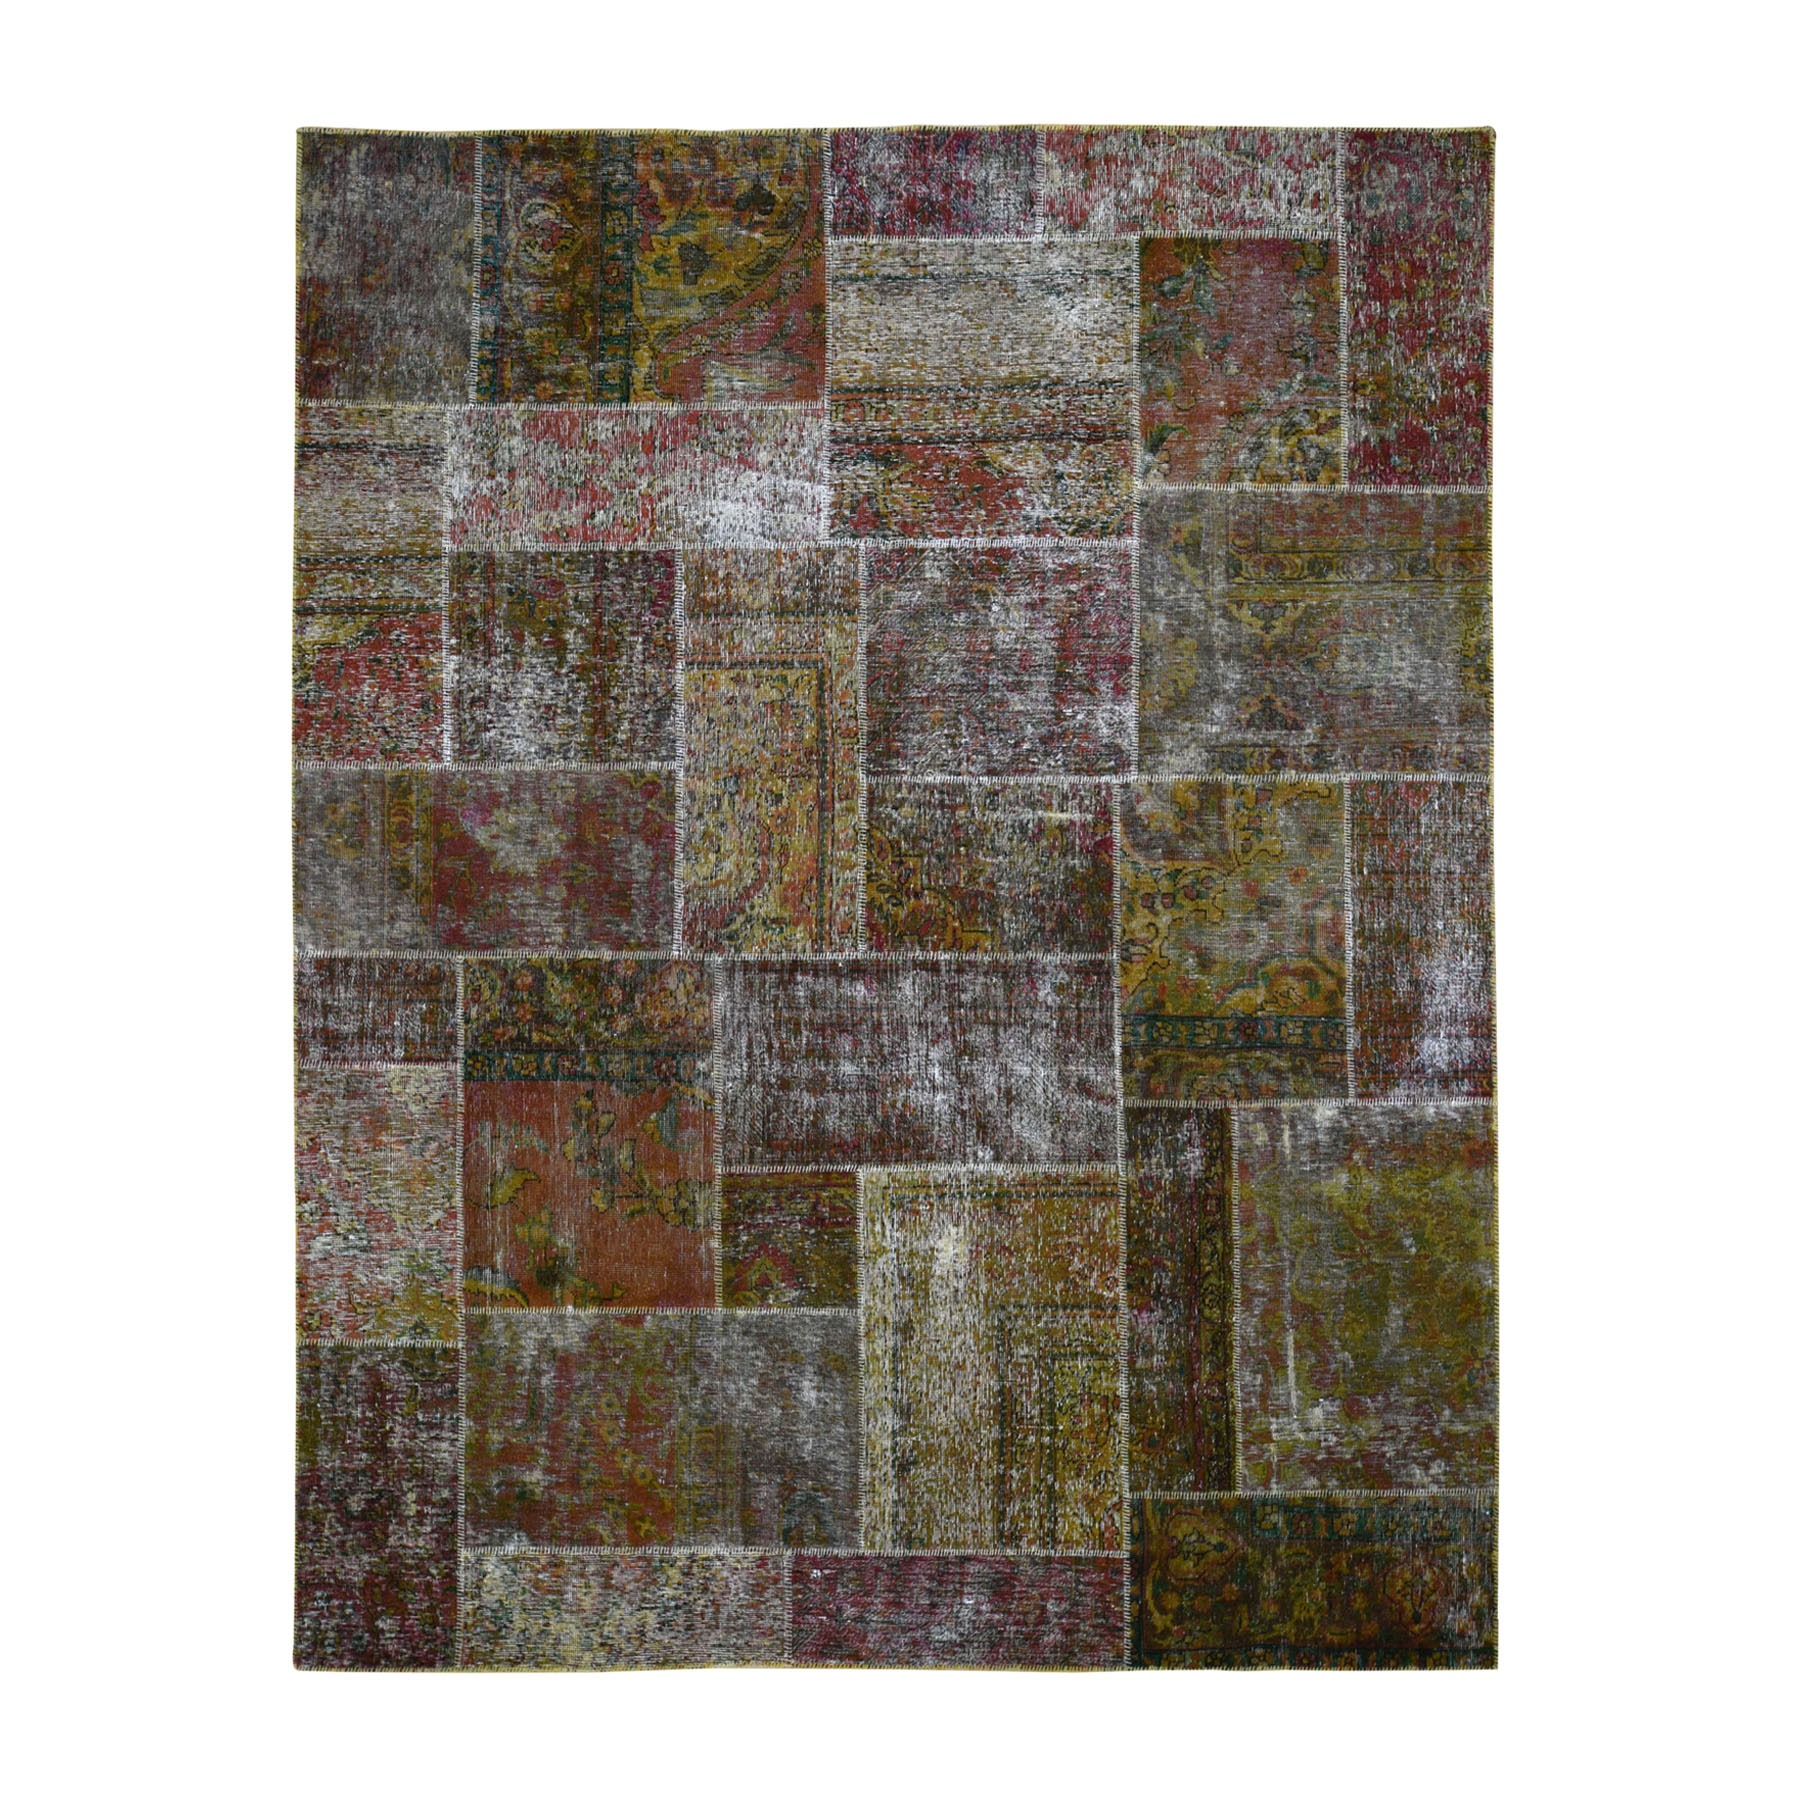 overdyed & vintage rugs LUV434511